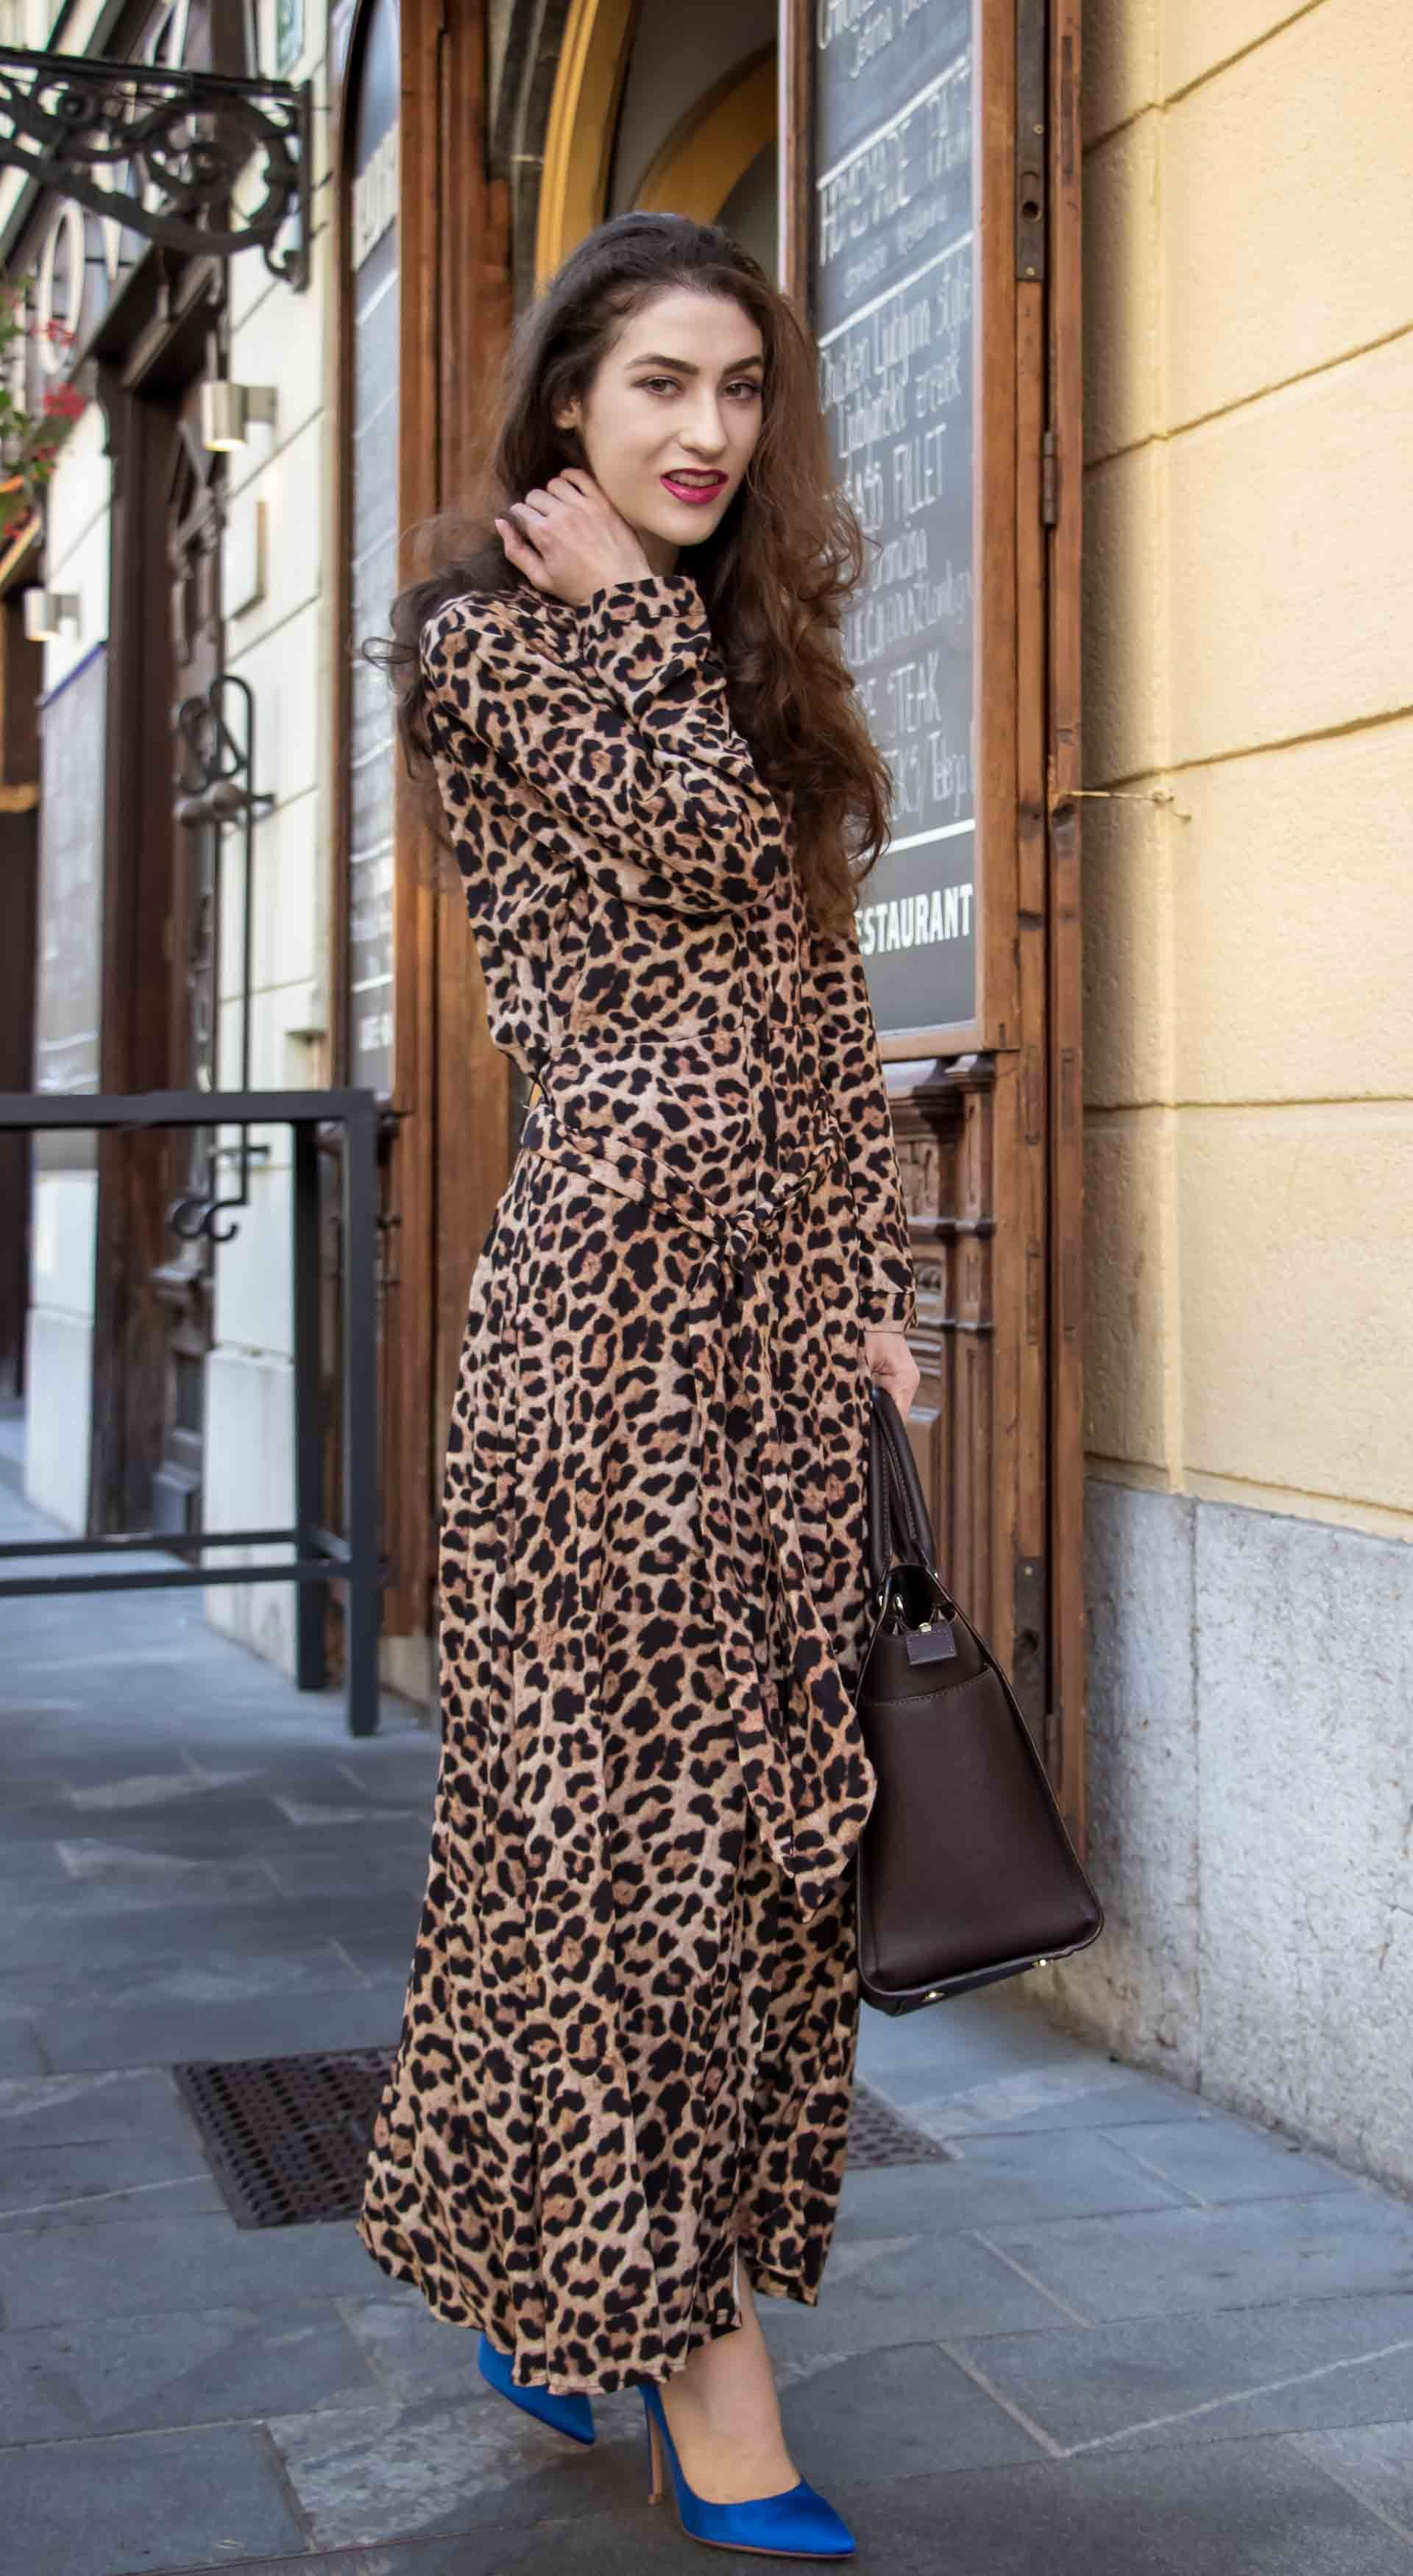 6f0c9f0c44 Don t know how to wear animal print  Here are my 2 tips you need to know  before wearing leopard print dress for the first time.  2 Wear it for  brunch date